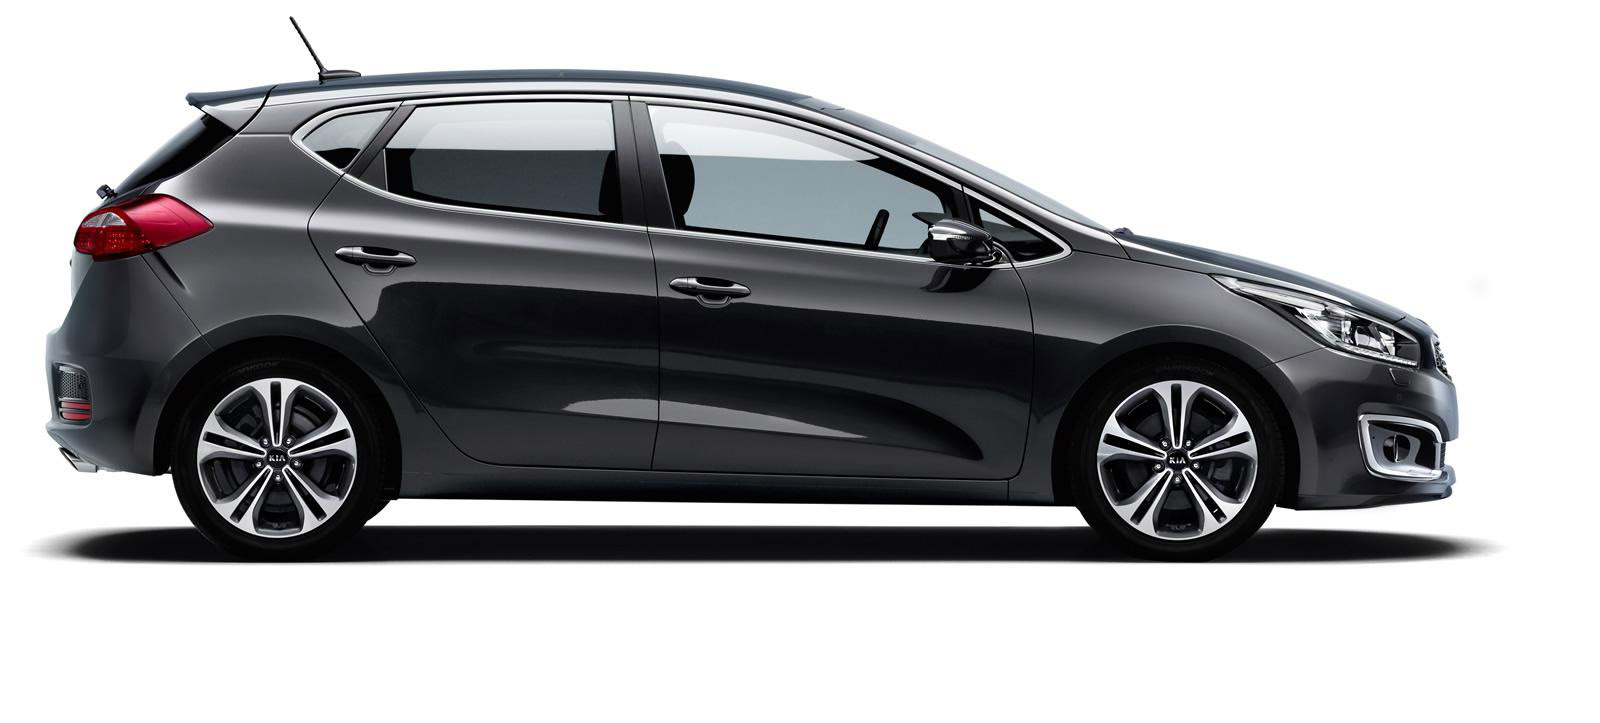 2016 Kia Ceed Facelift Debuts With Minor Styling Updates